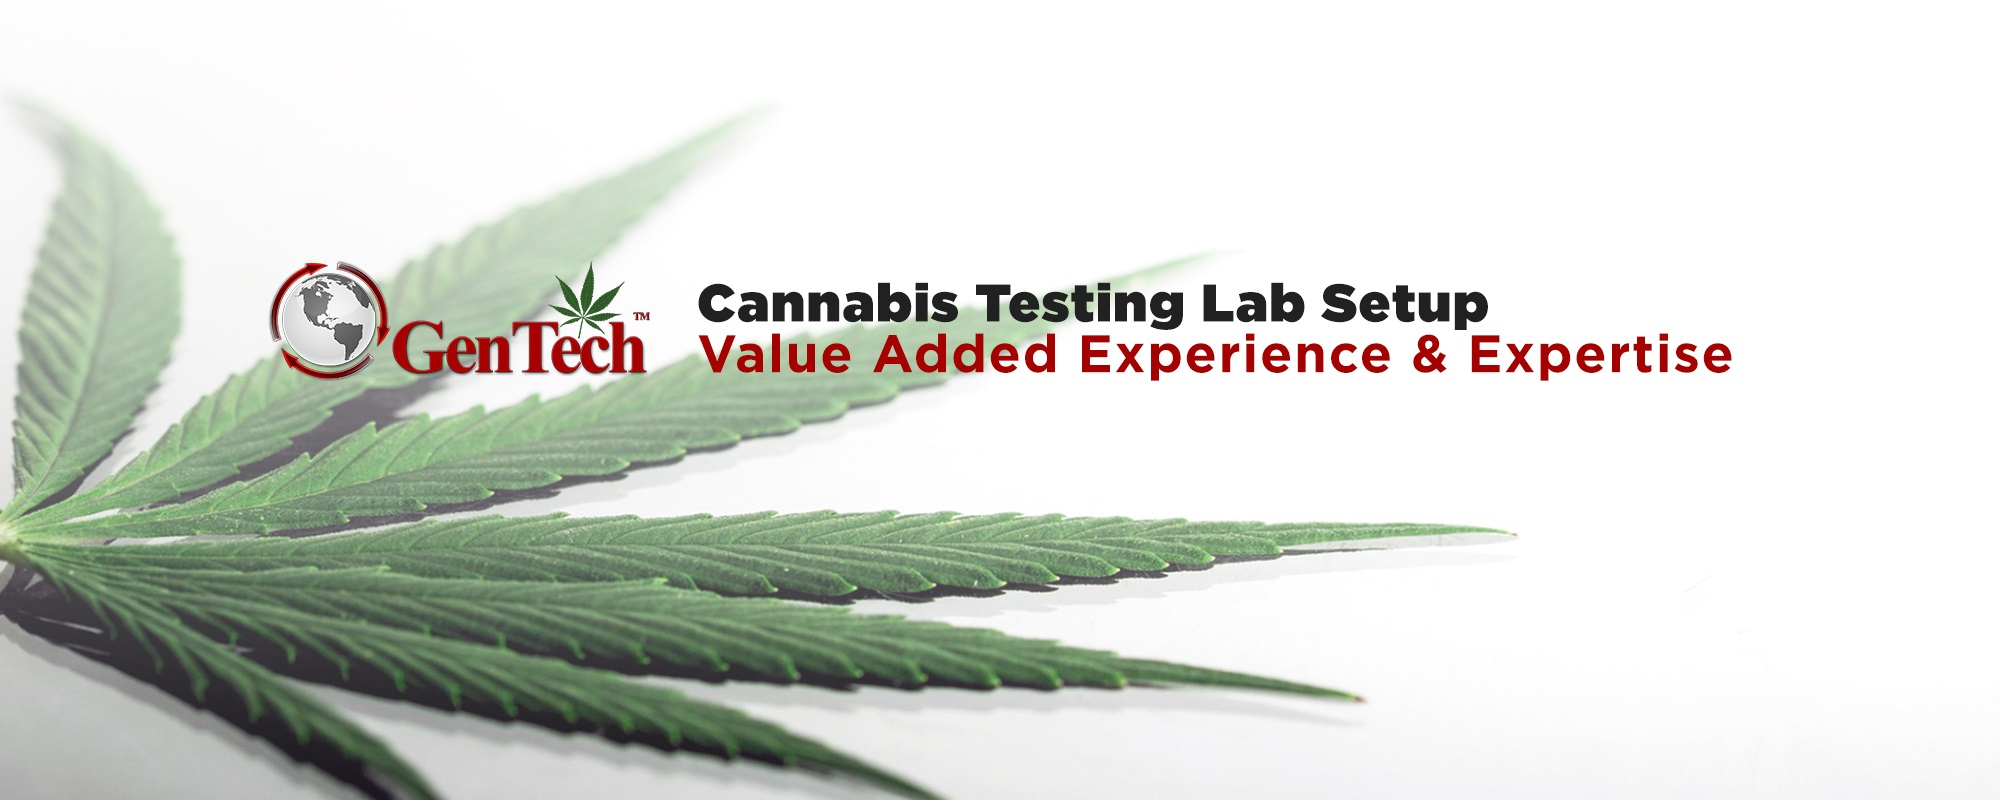 GenTech Scientific: Cannabis Testing Lab Setup